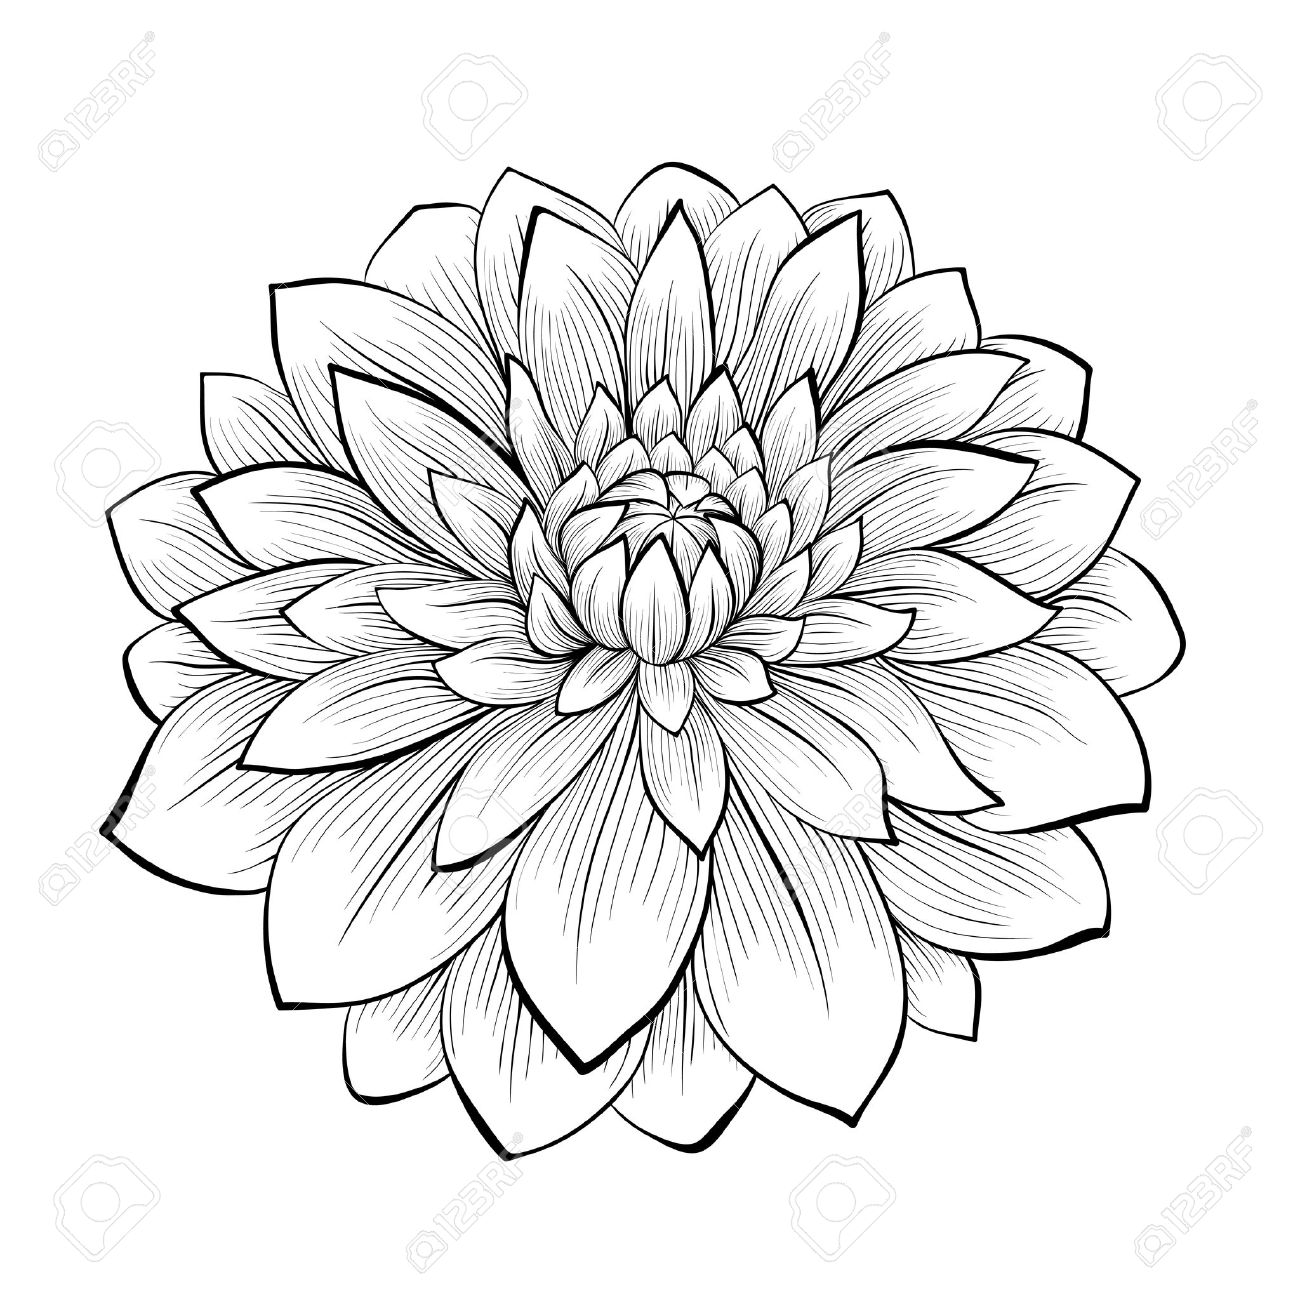 1300x1300 Hand Drawn Flower Stock Photos. Royalty Free Business Images